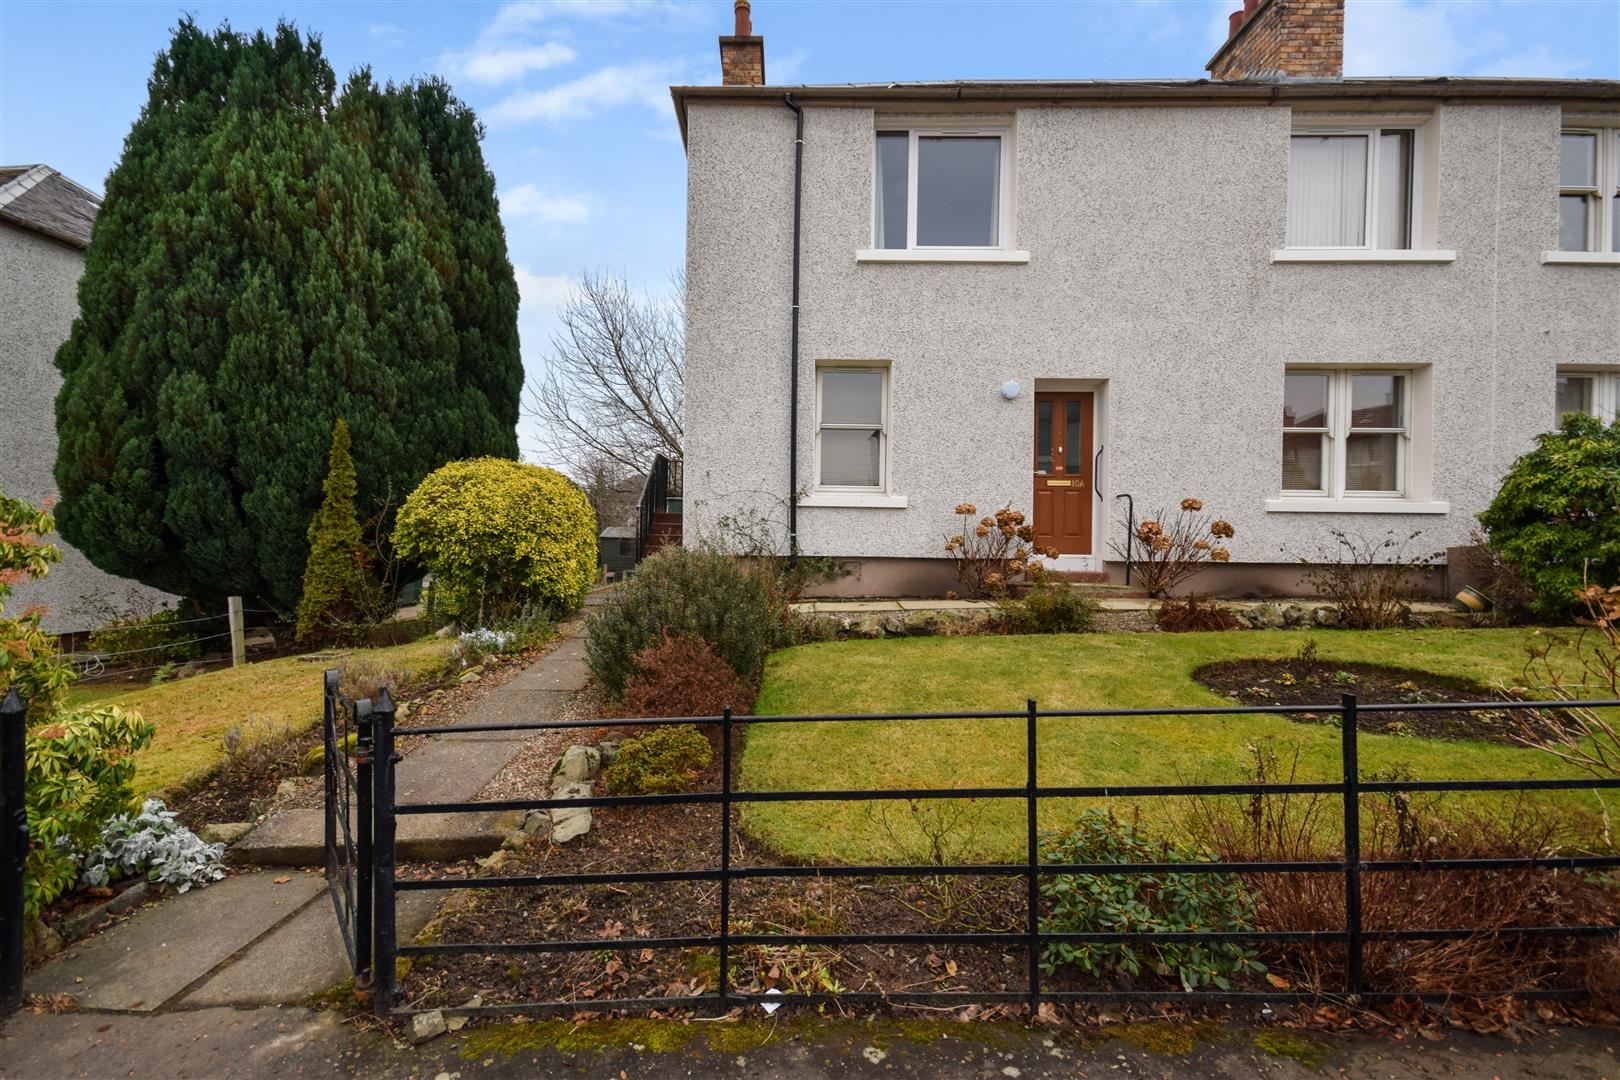 10A, Abbot Crescent, Perth, Perthshire, PH2 0HE, UK